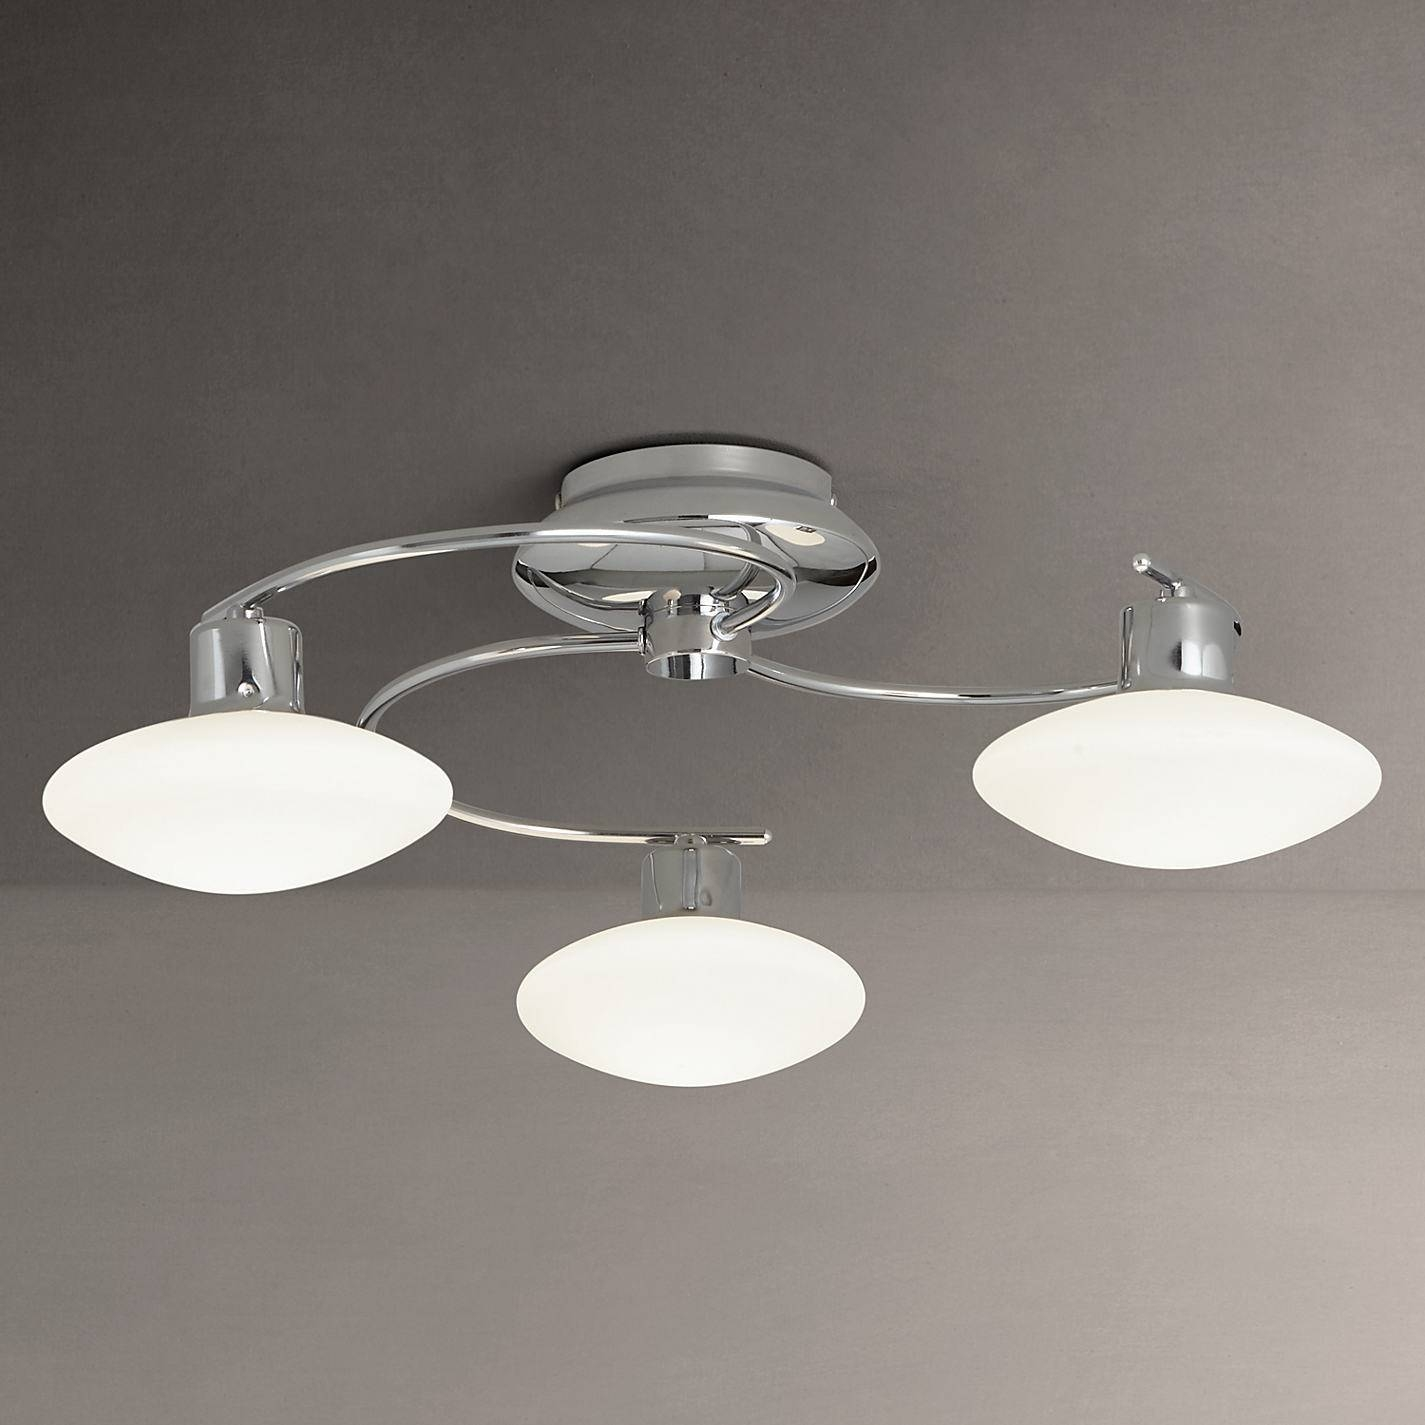 Led Ceiling Lighting - Baby-Exit with John Lewis Lighting Pendants (Image 11 of 15)